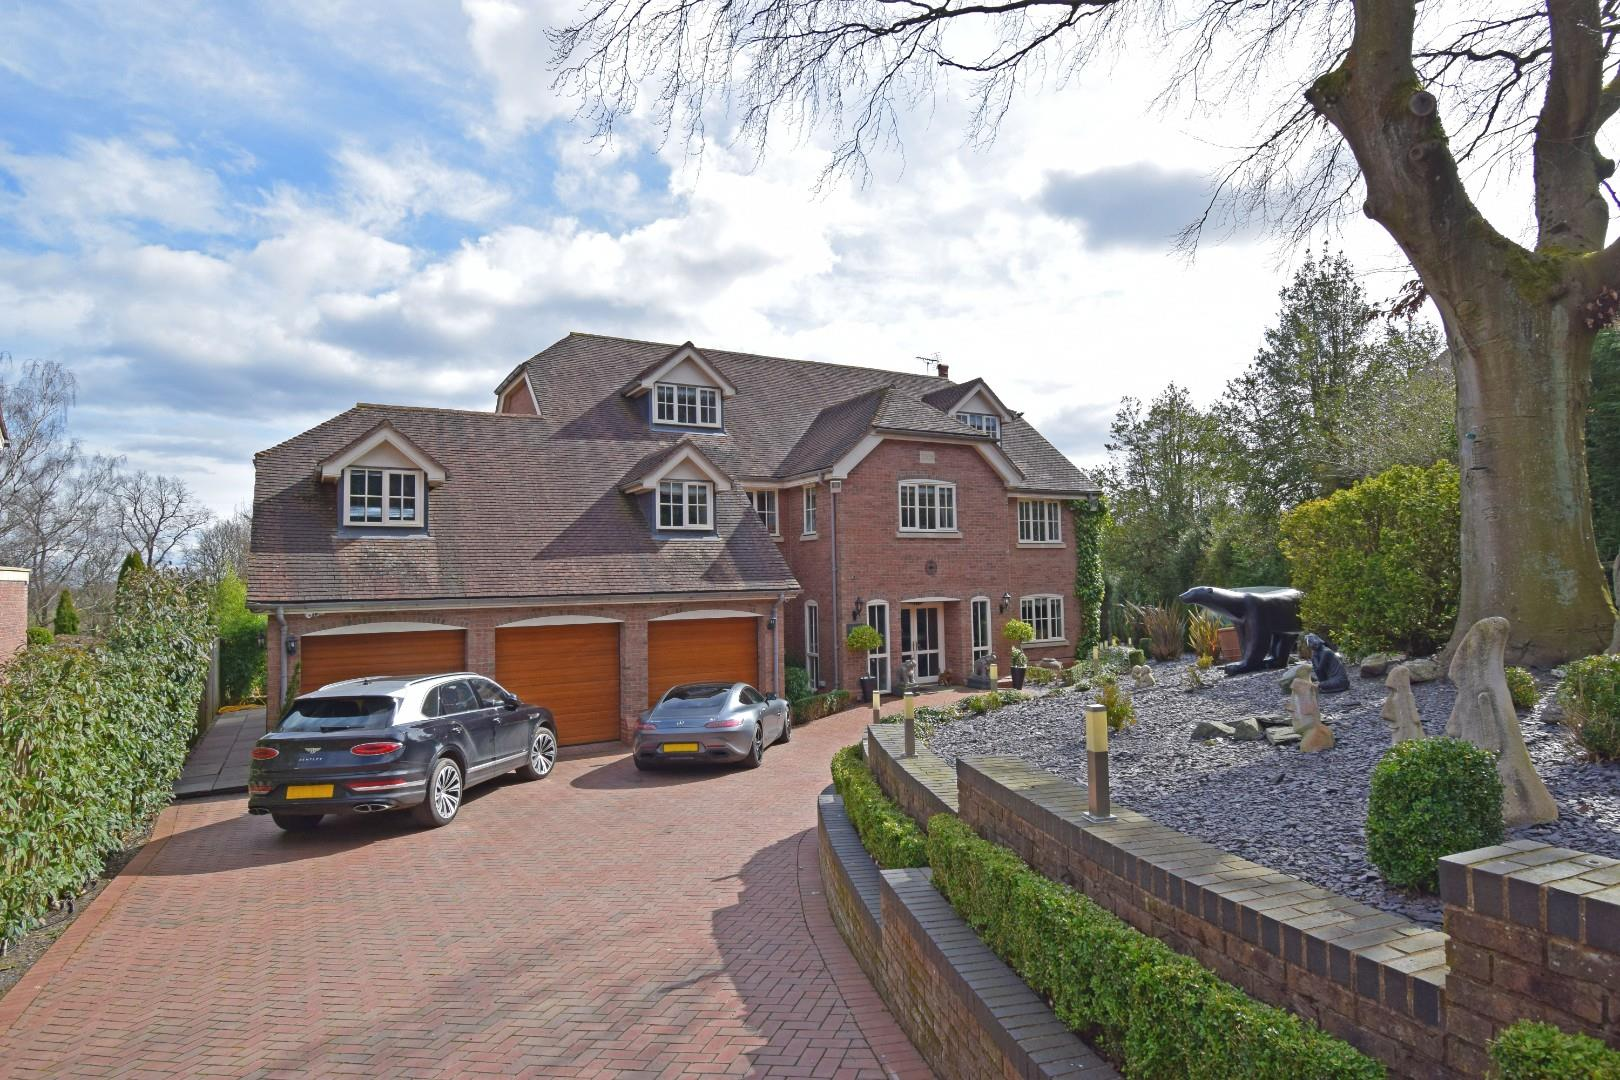 Bilberry Grange, 26 Fiery Hill Road, Barnt Green, B45 8LG